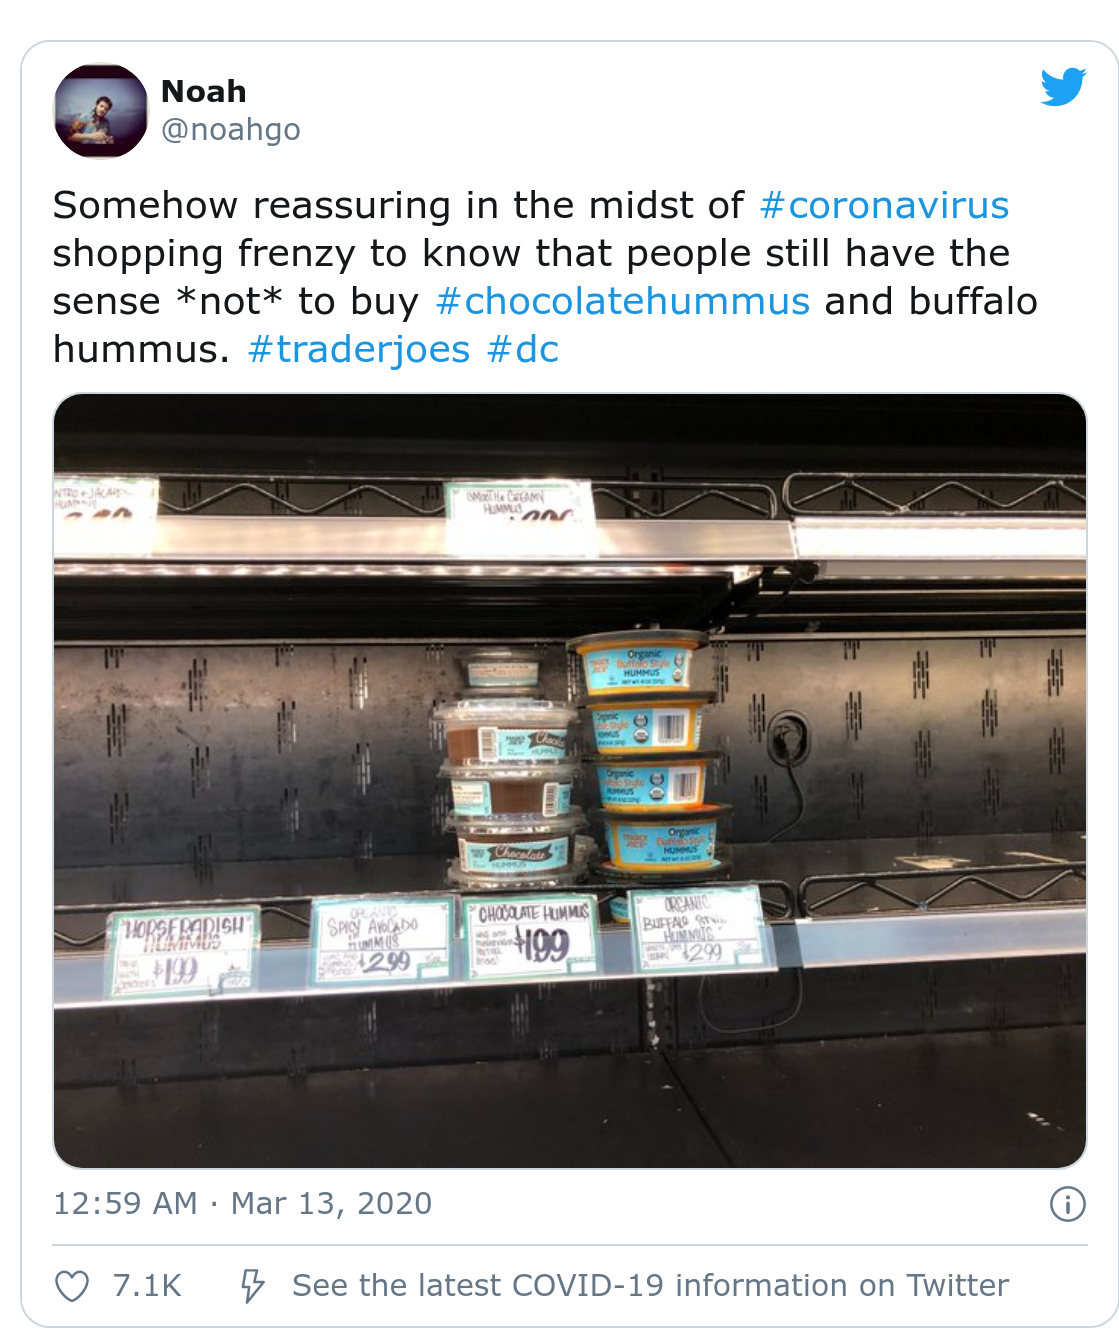 "Tweet captioned "" Somehow reassuring in the midst of coronavirus shopping frenzy to know that people still have the sense *not* to buy chocolate hummys and buffalo hummus"" and an image of trader joes with leftover chocolate and buffalo hummus on their shelves."